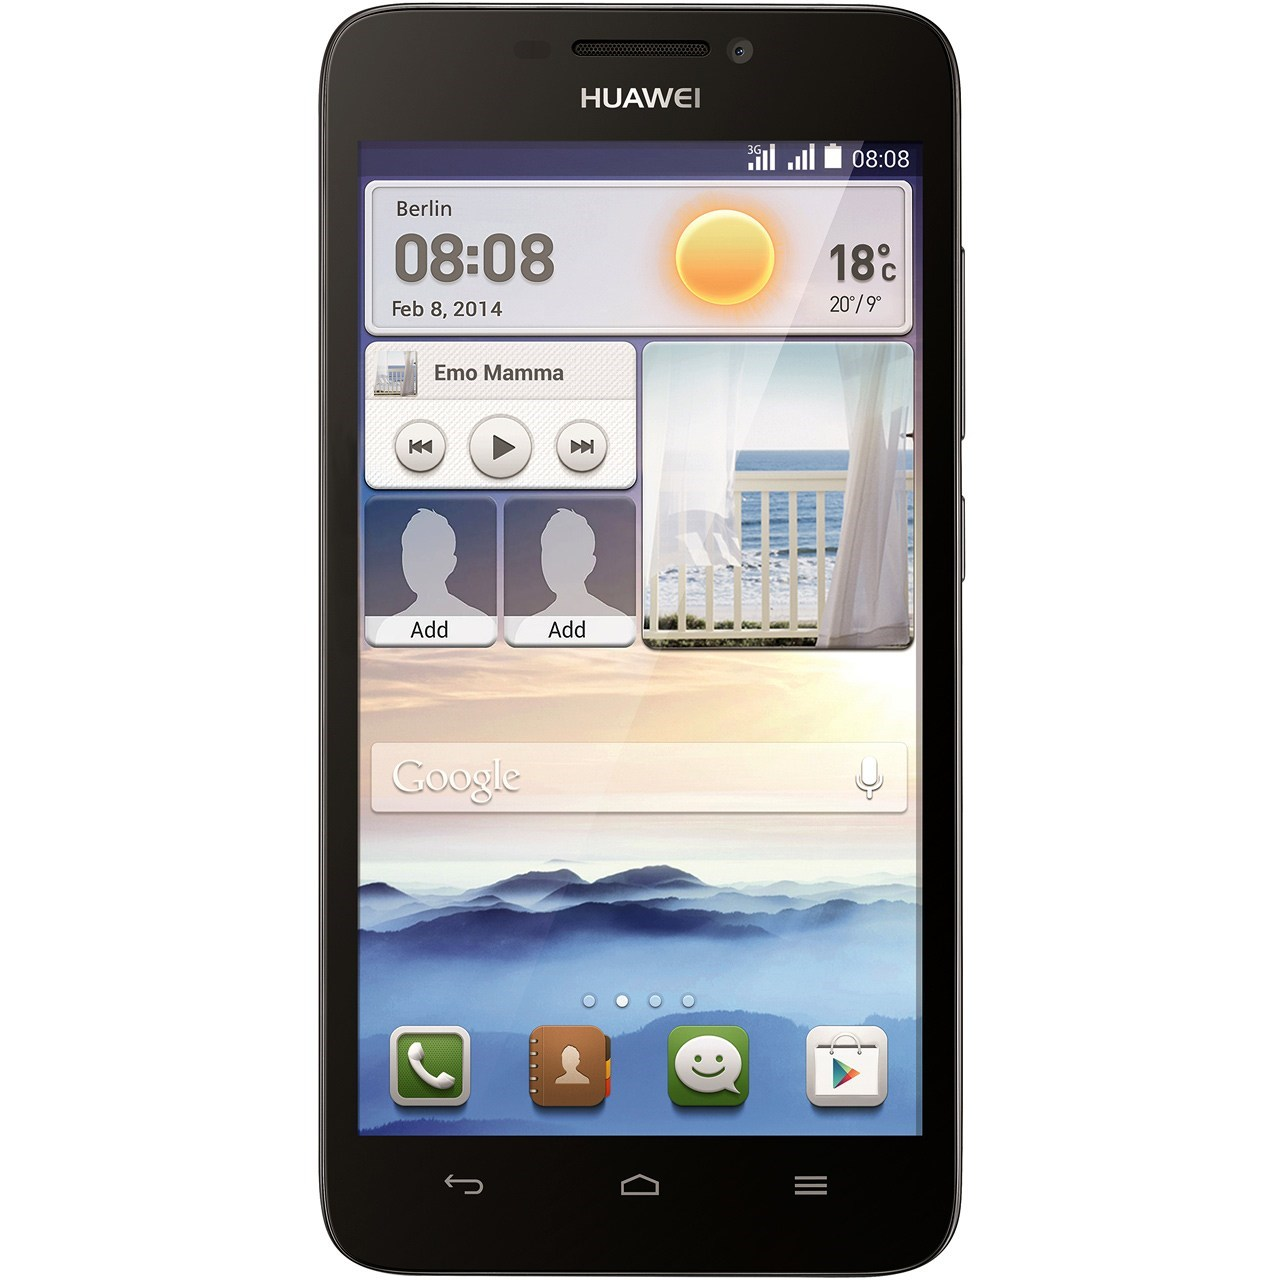 hide Glass Screen Protector For Huawei Ascend G630 Dual